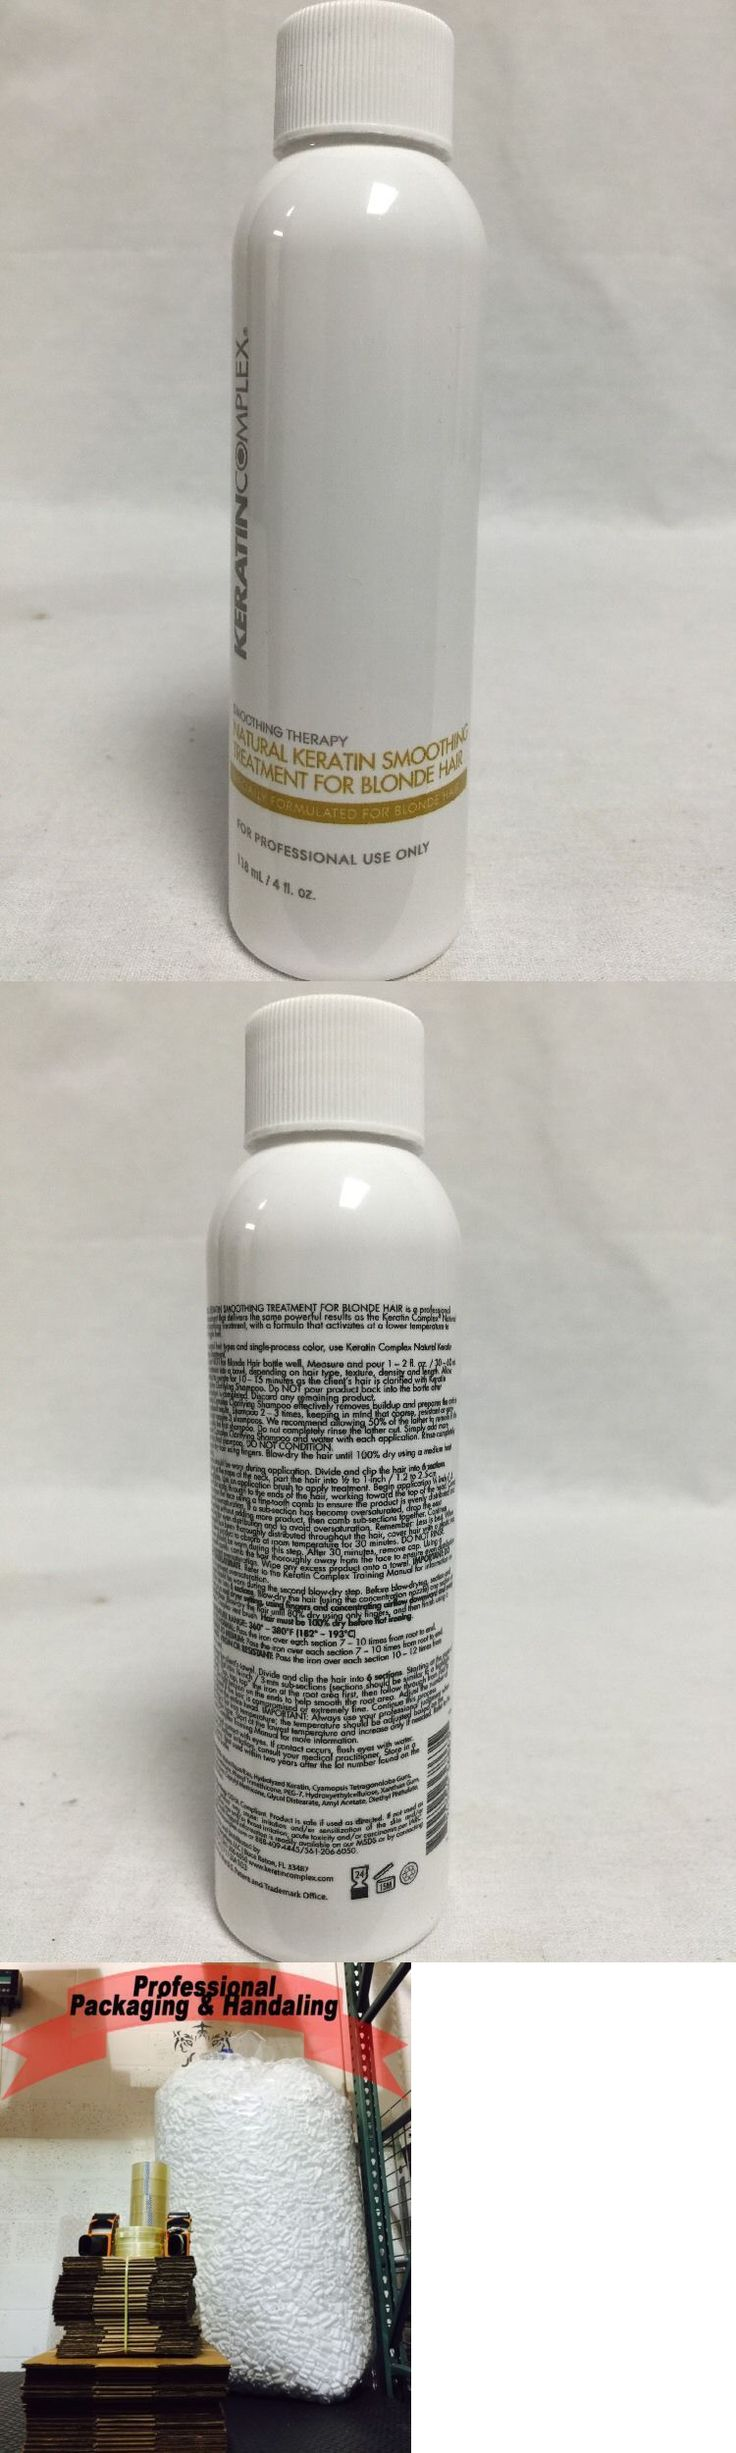 Relaxers and Straightening Prod: Keratin Complex Natural Keratin Smoothing Treatment For Blonde Hair 4 Oz -> BUY IT NOW ONLY: $56.95 on eBay!